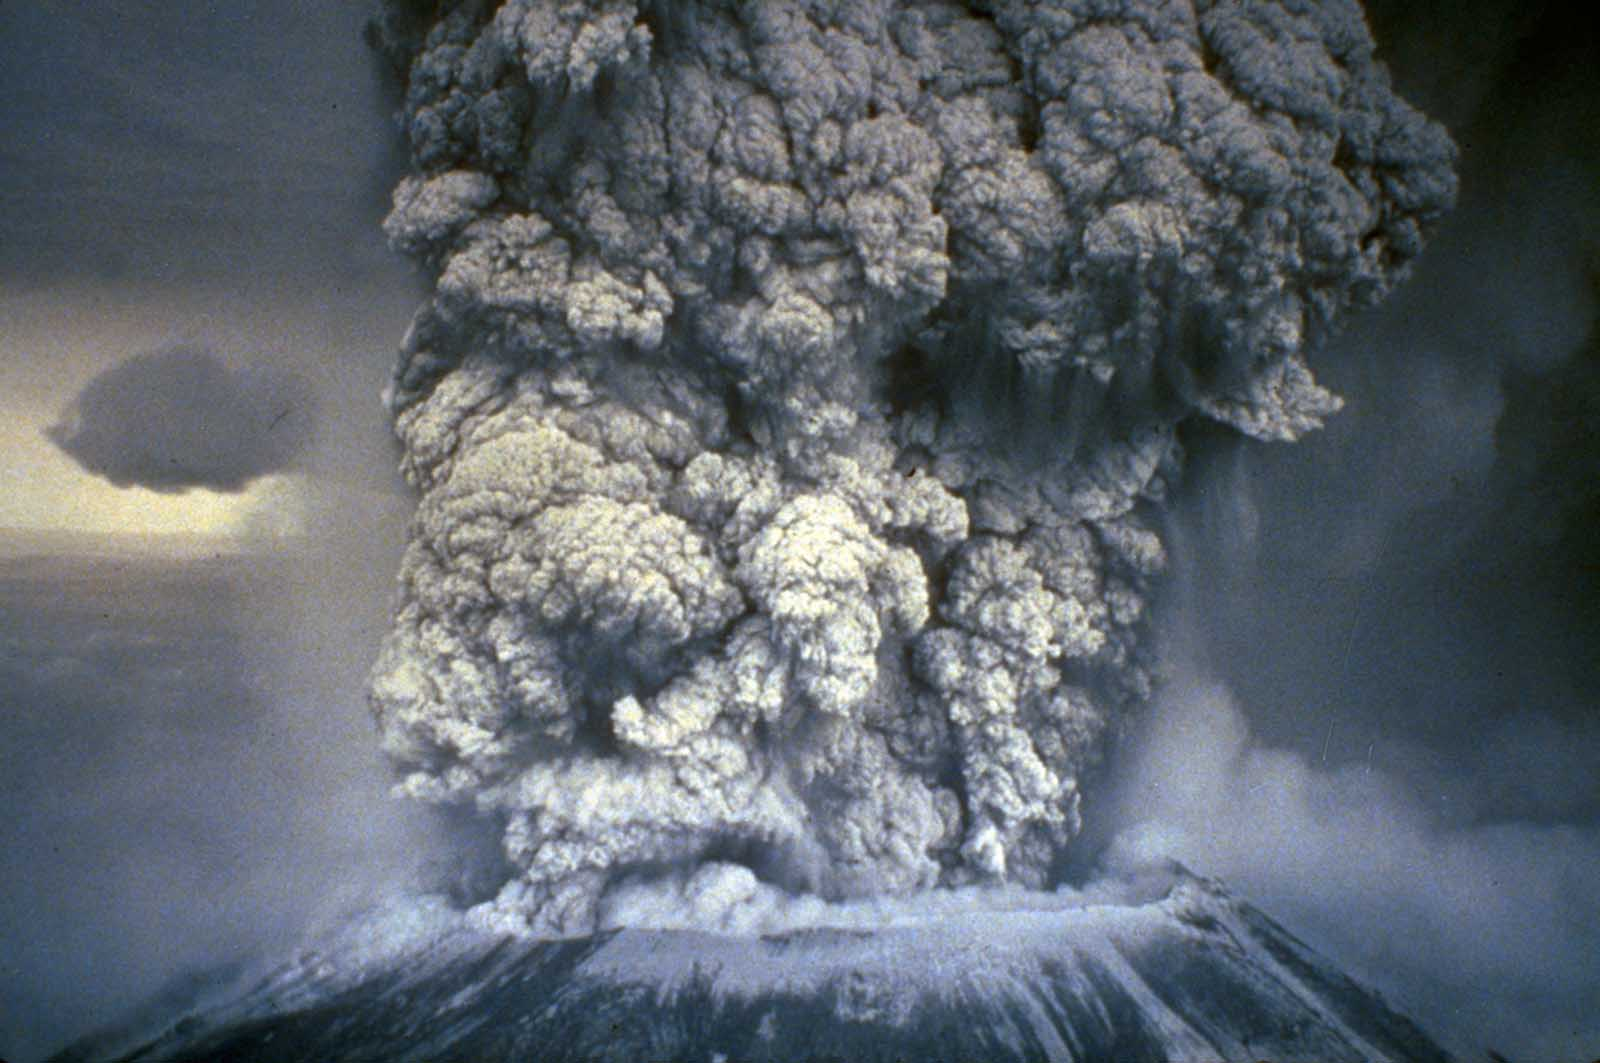 Mt. St. Helens, May 18, 1980.